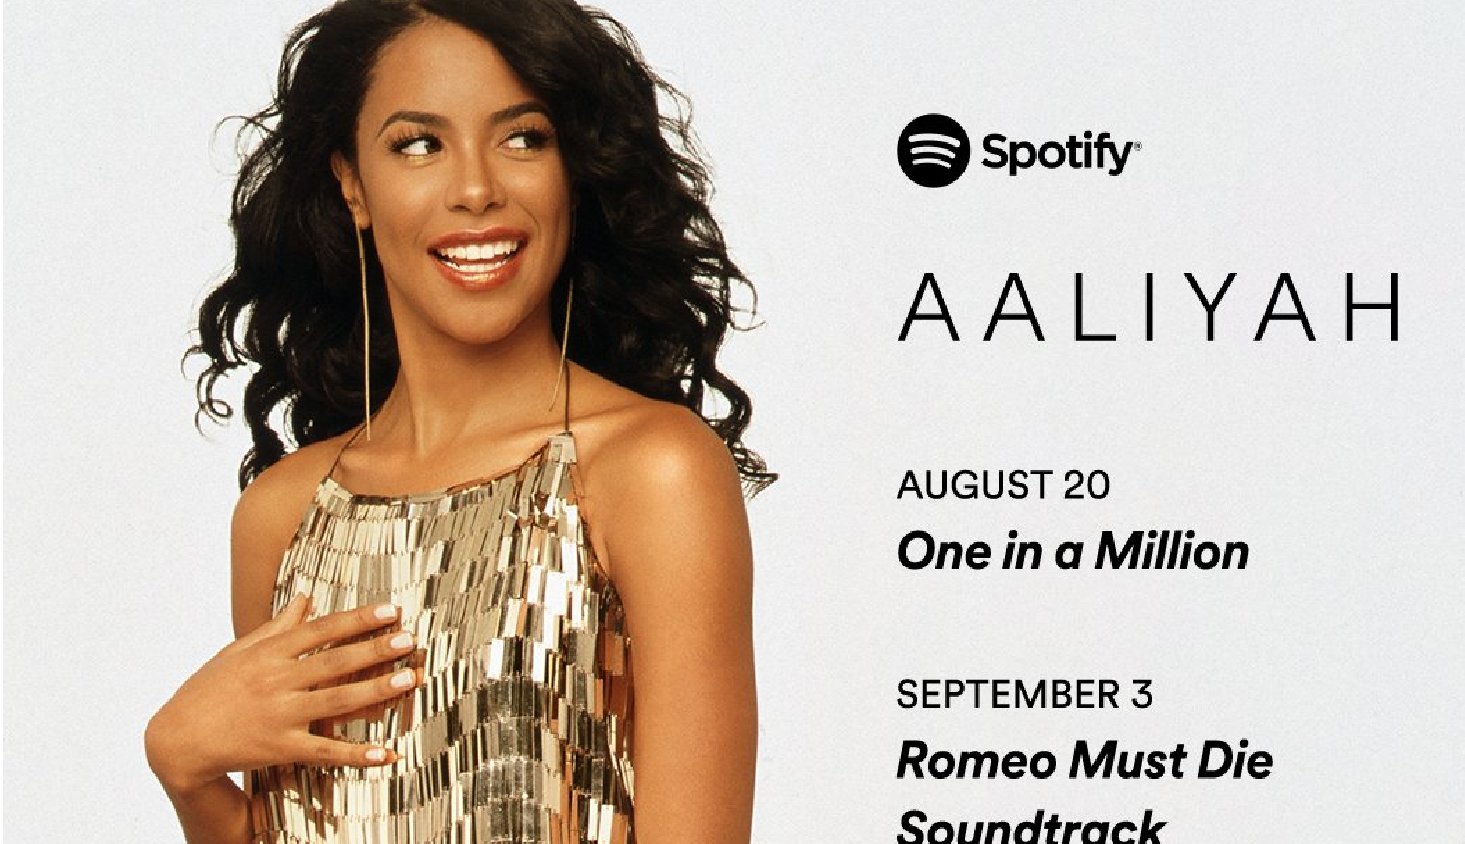 Aaliyah's music finally coming to streaming, 20 years after her death     – CNET